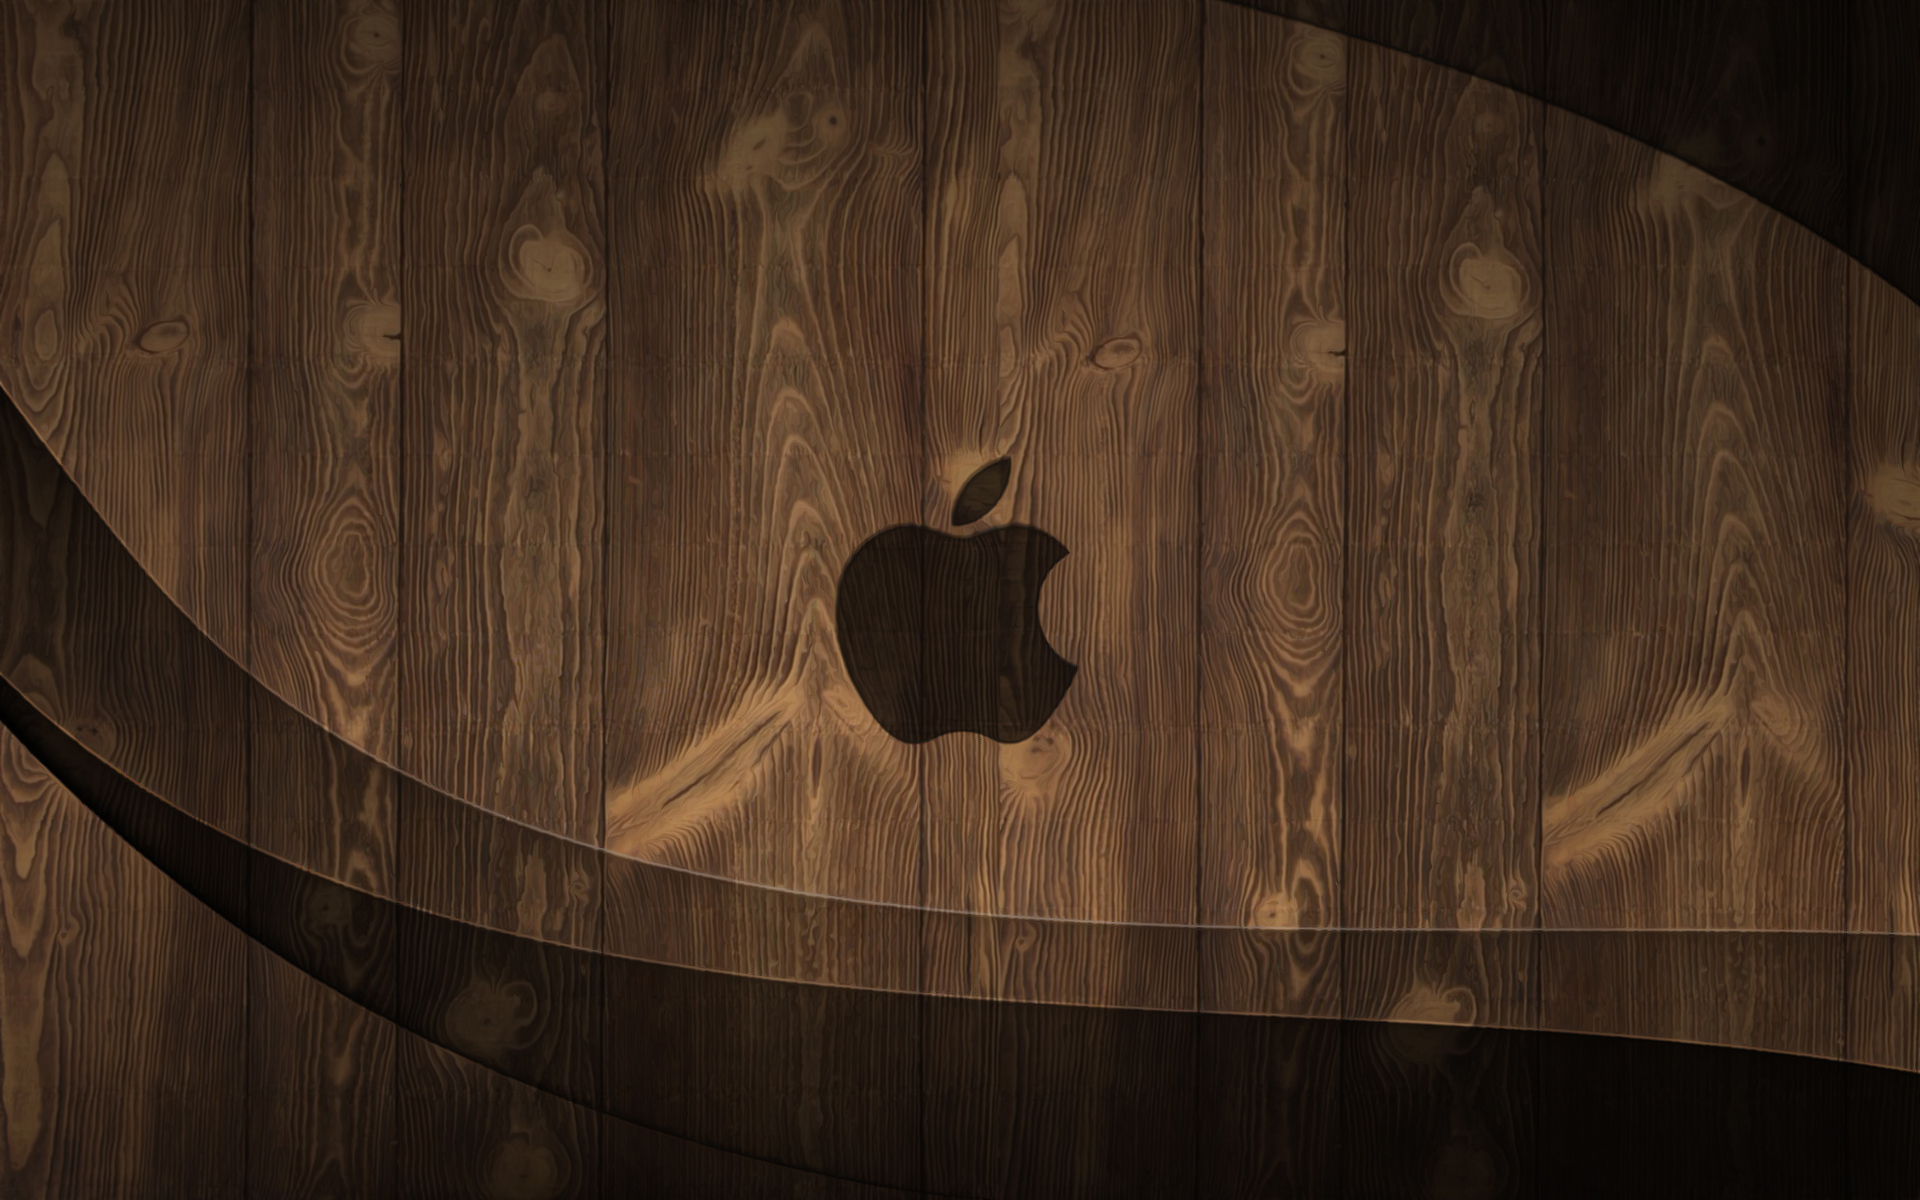 wooden apple by arthursmith